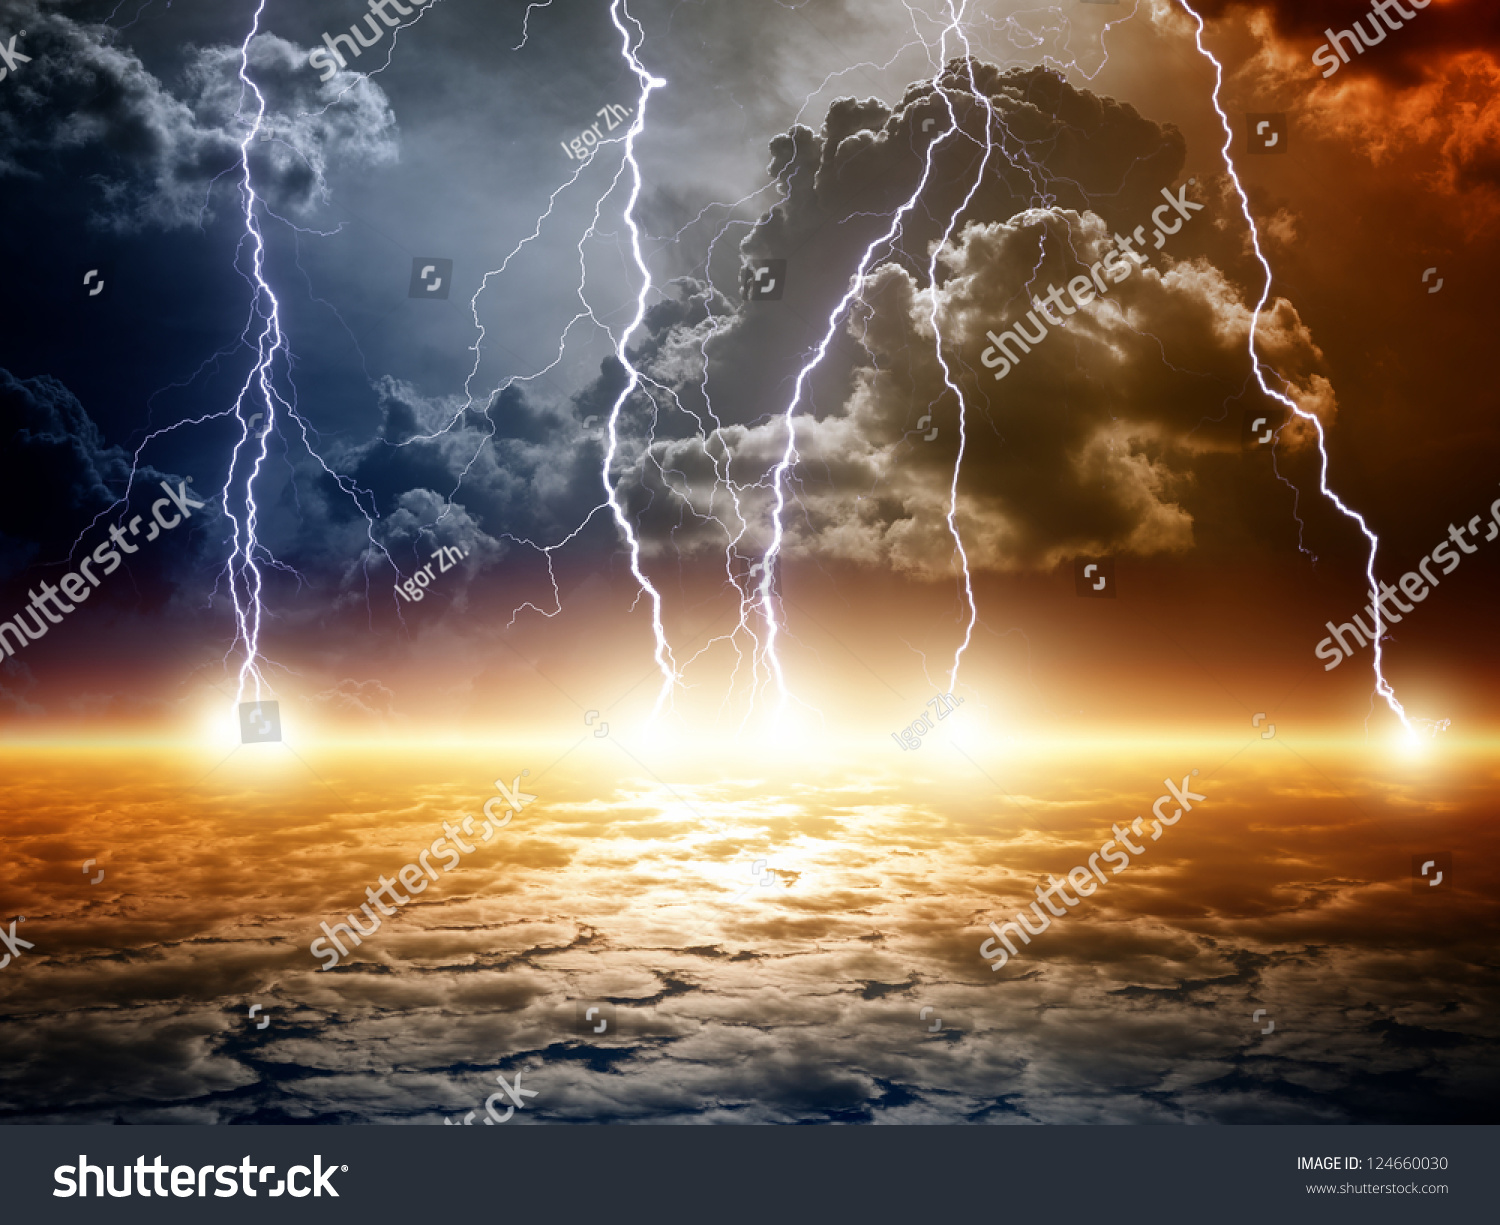 Dramatic Apocalyptic Background End World Bright Stock Illustration 124660030 - Shutterstock & Dramatic Apocalyptic Background End World Bright Stock Illustration ...